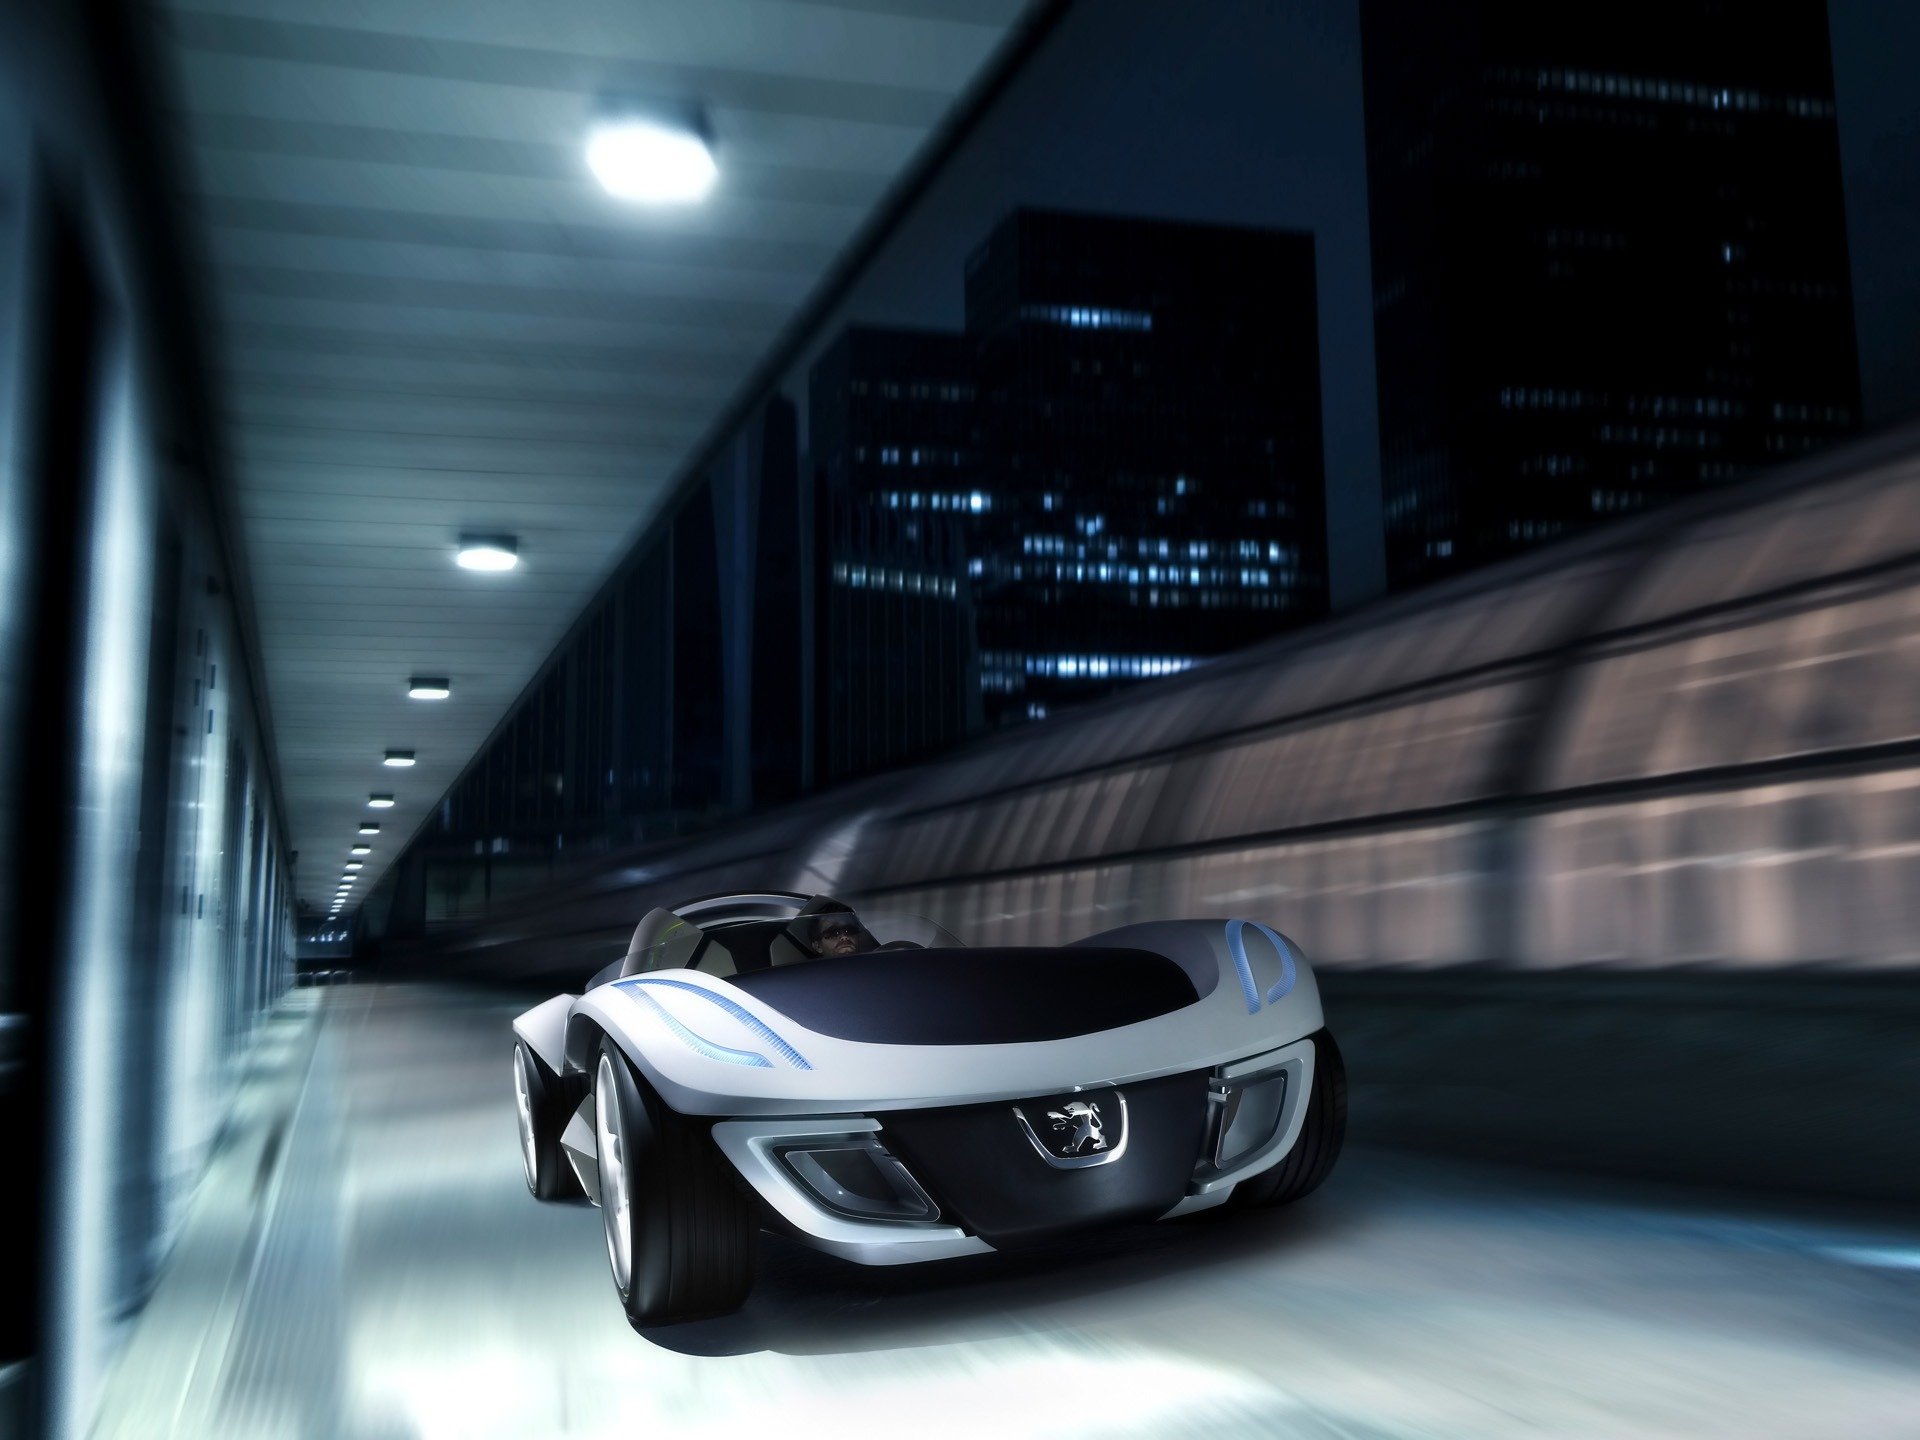 Peugeot Flux Concept 2007 Wallpaper Concept Cars Wallpaper